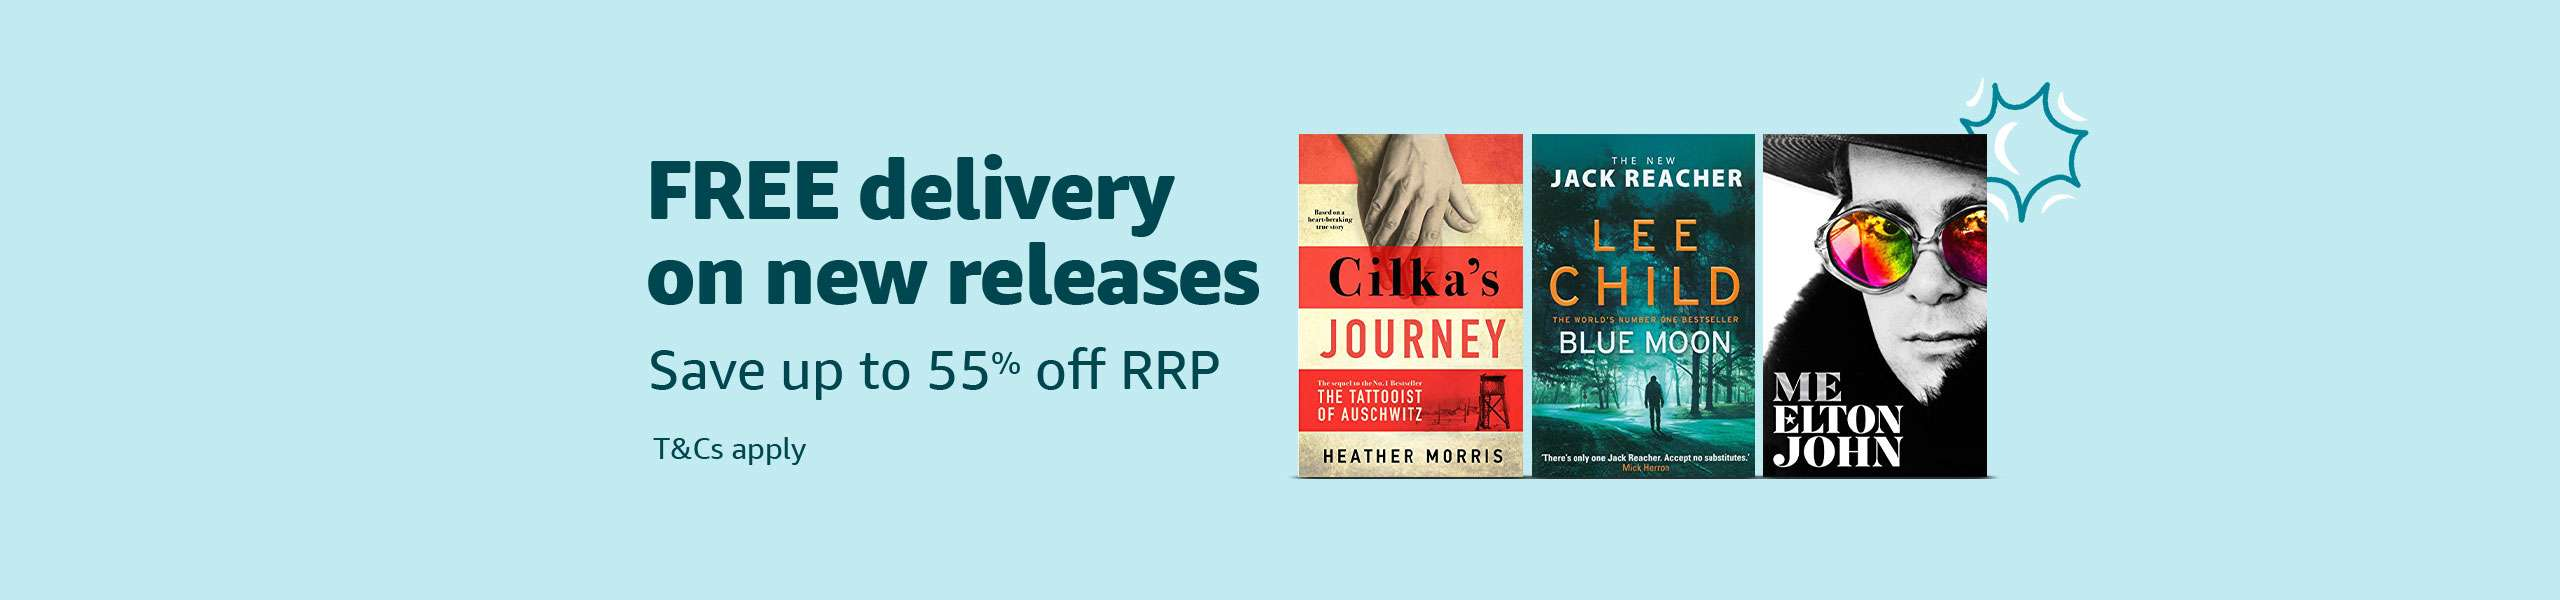 FREE delivery and up to 55% off RRP on eligible books